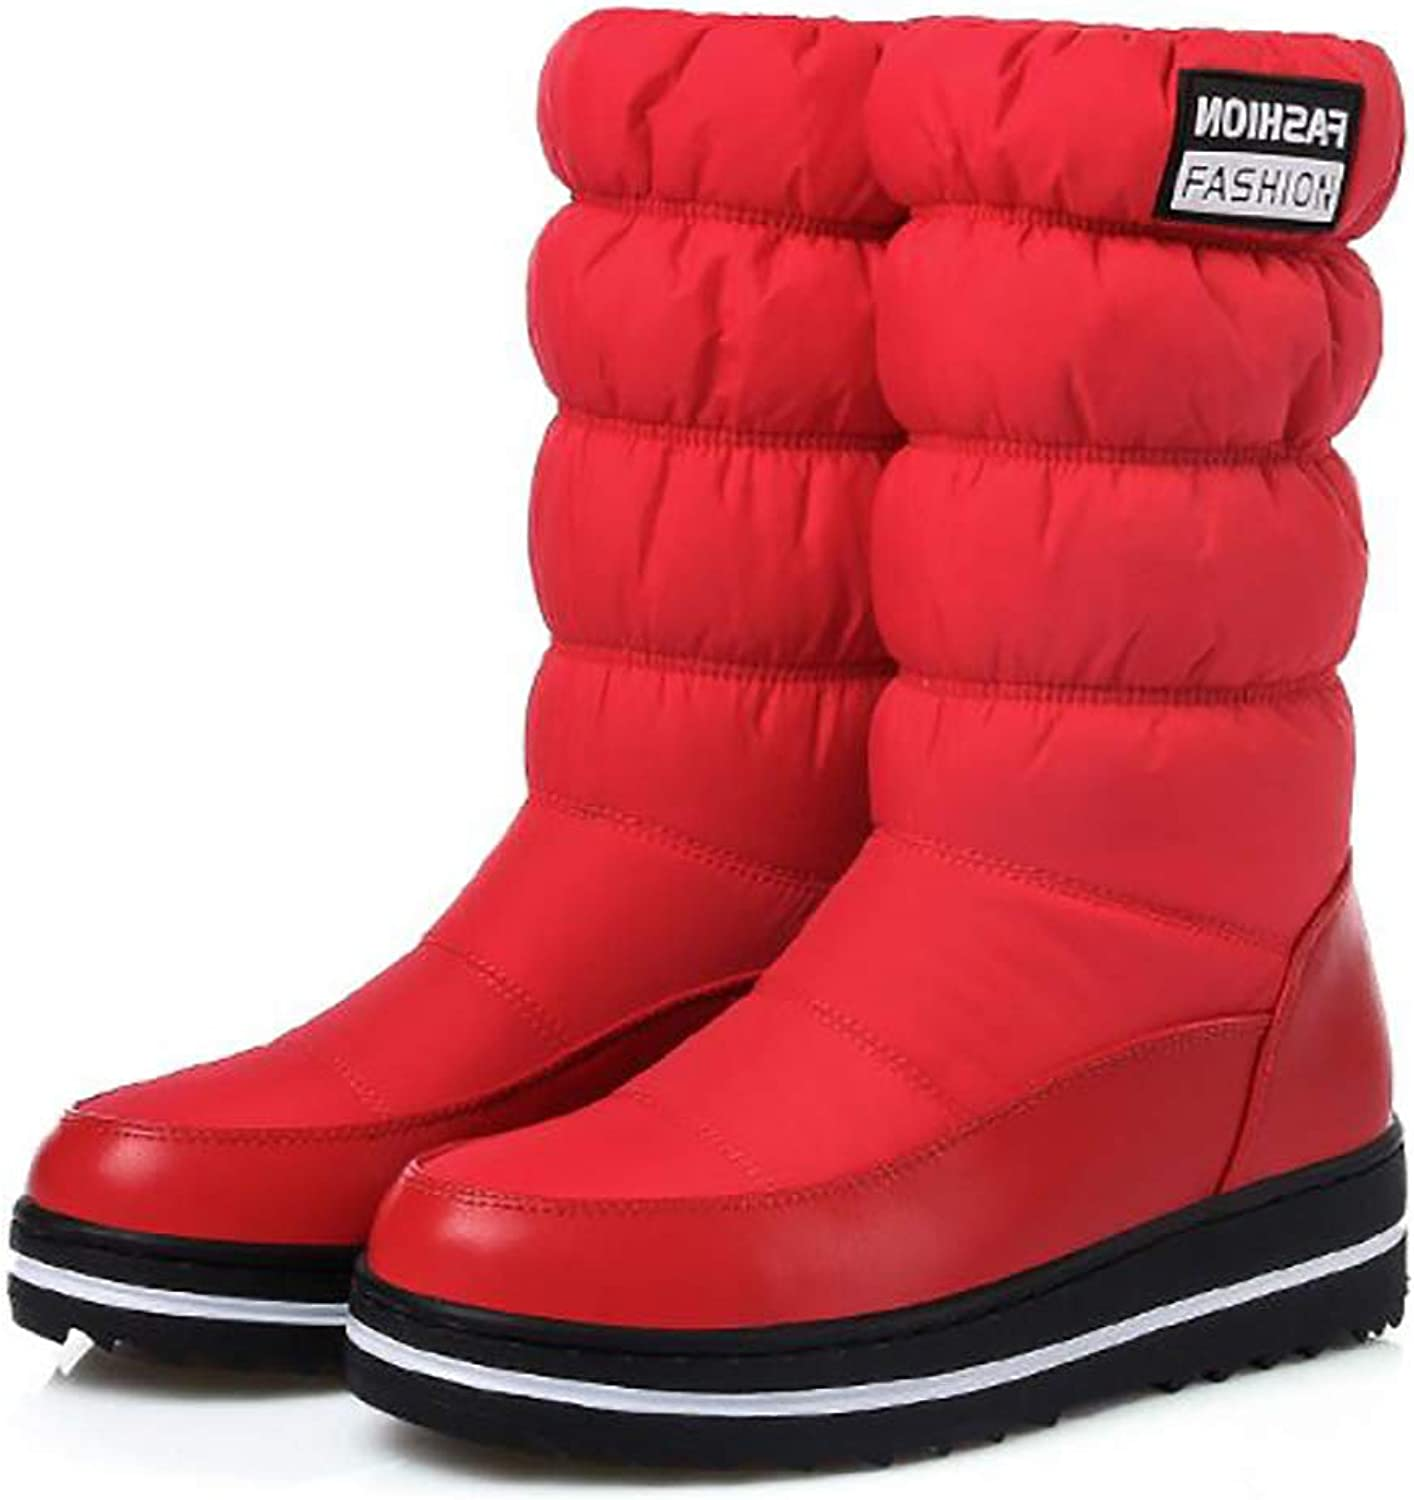 Women Snow Boots Warm Cotton Down shoes Waterproof Boots Wedge Platform Mid Calf Boots Winterboots,Red,43